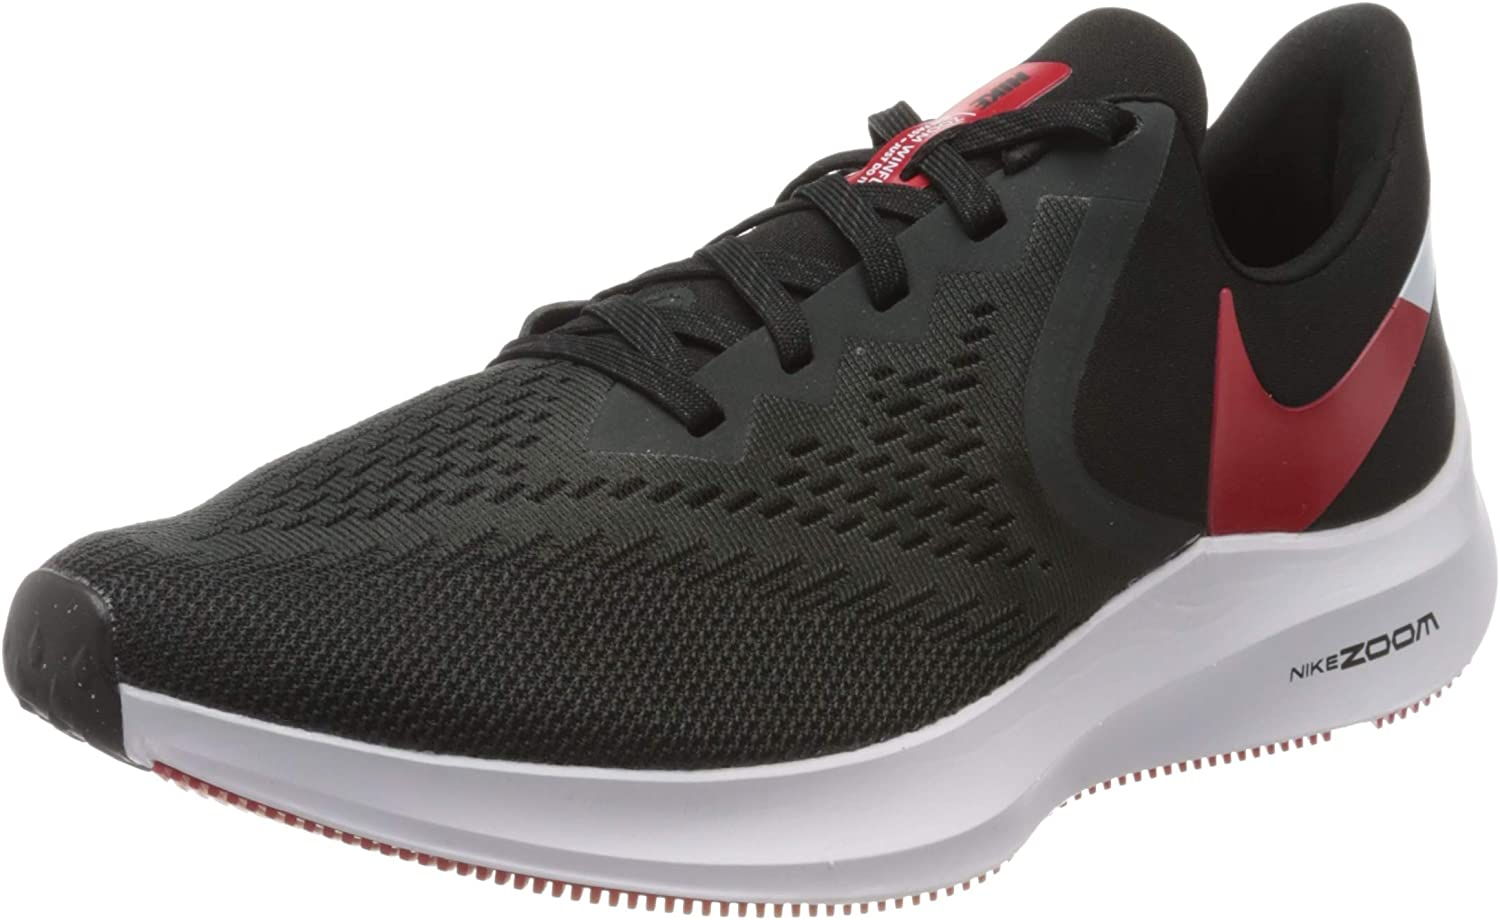 Air Zoom Winflo 6 Running Shoes